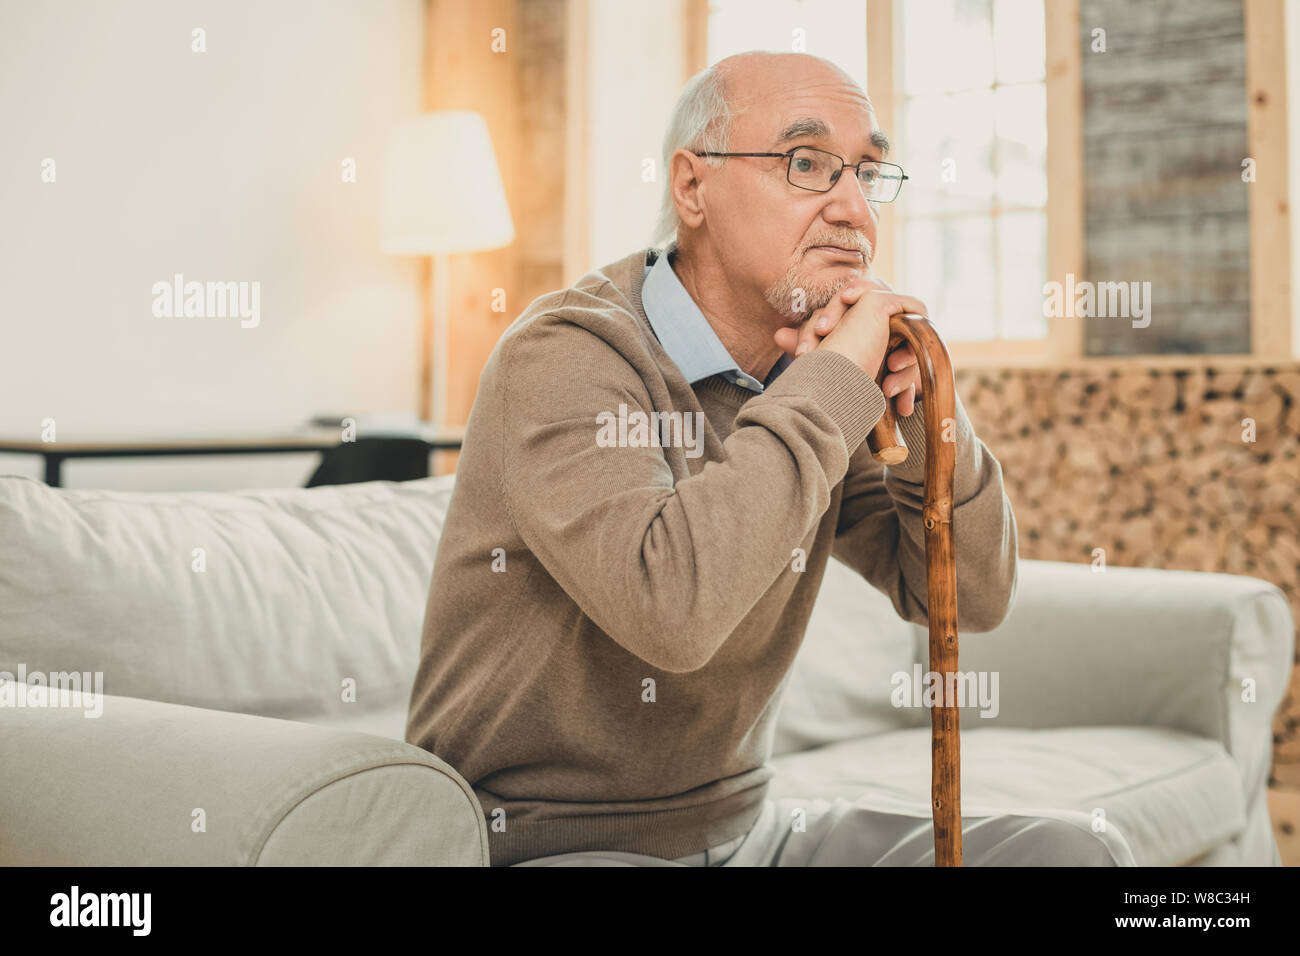 Tired old man with grey hair leaning on the wooden cane Stock Photo